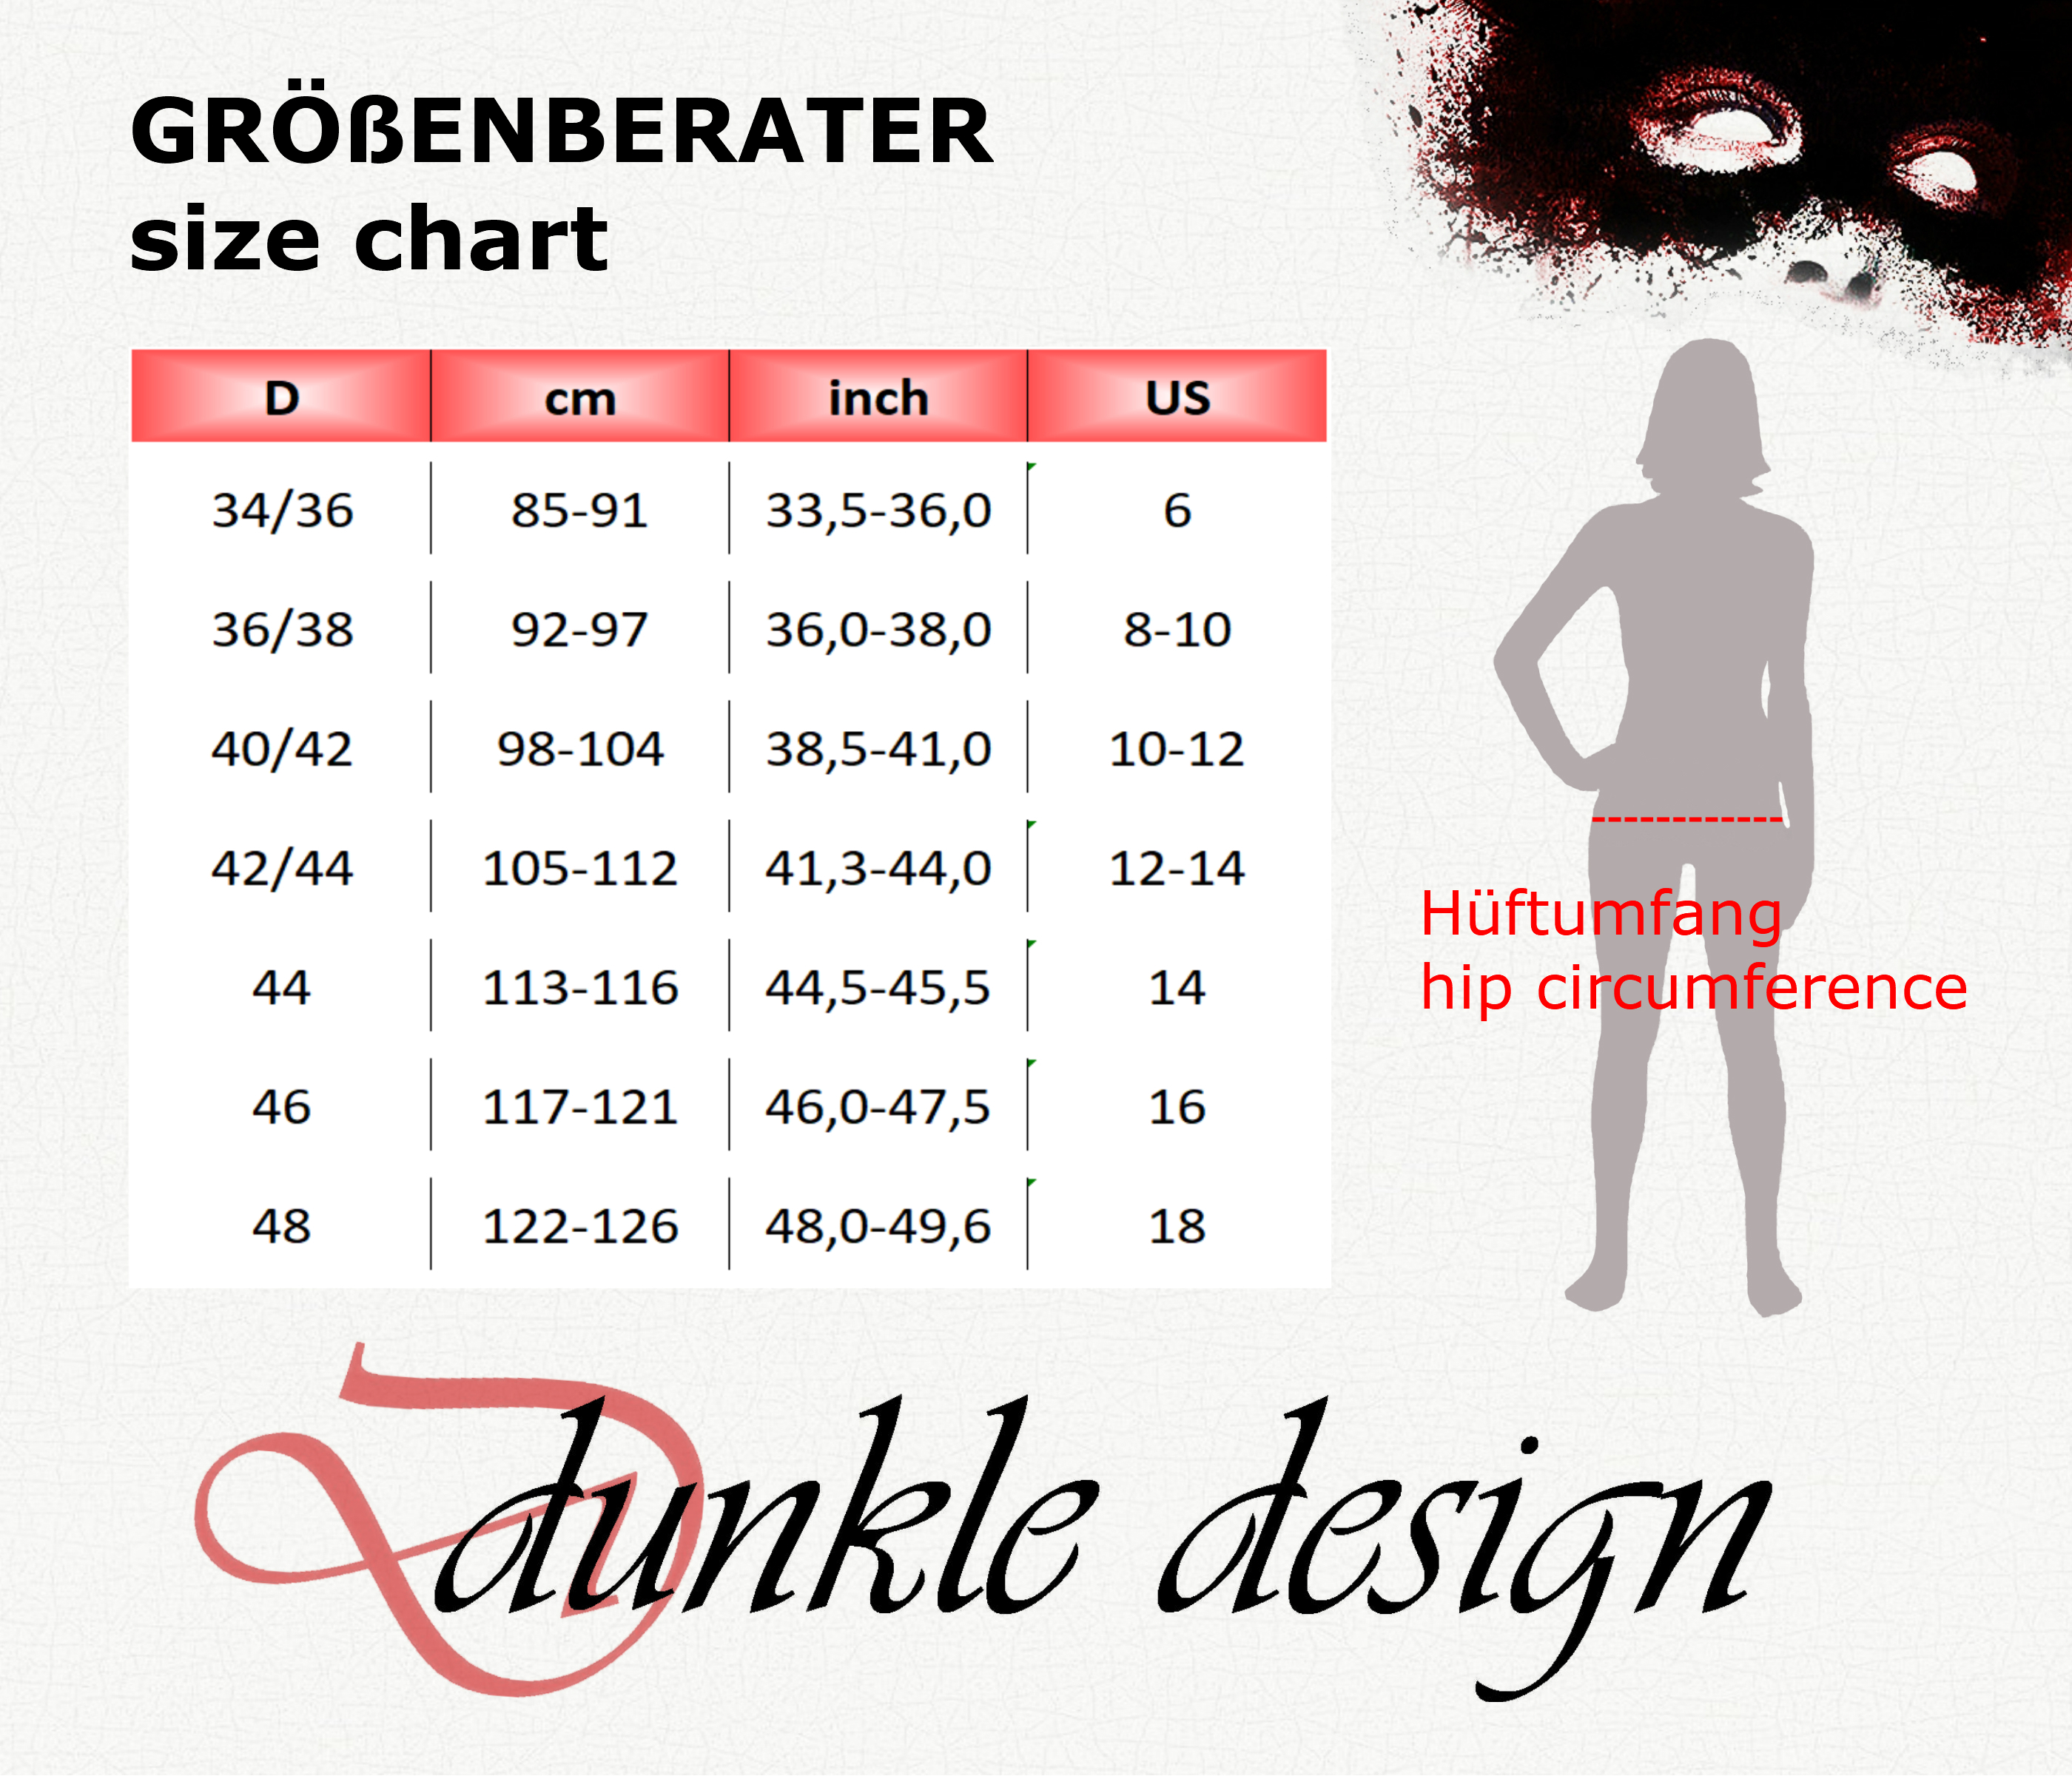 International_Groessenberater_dunkledesign